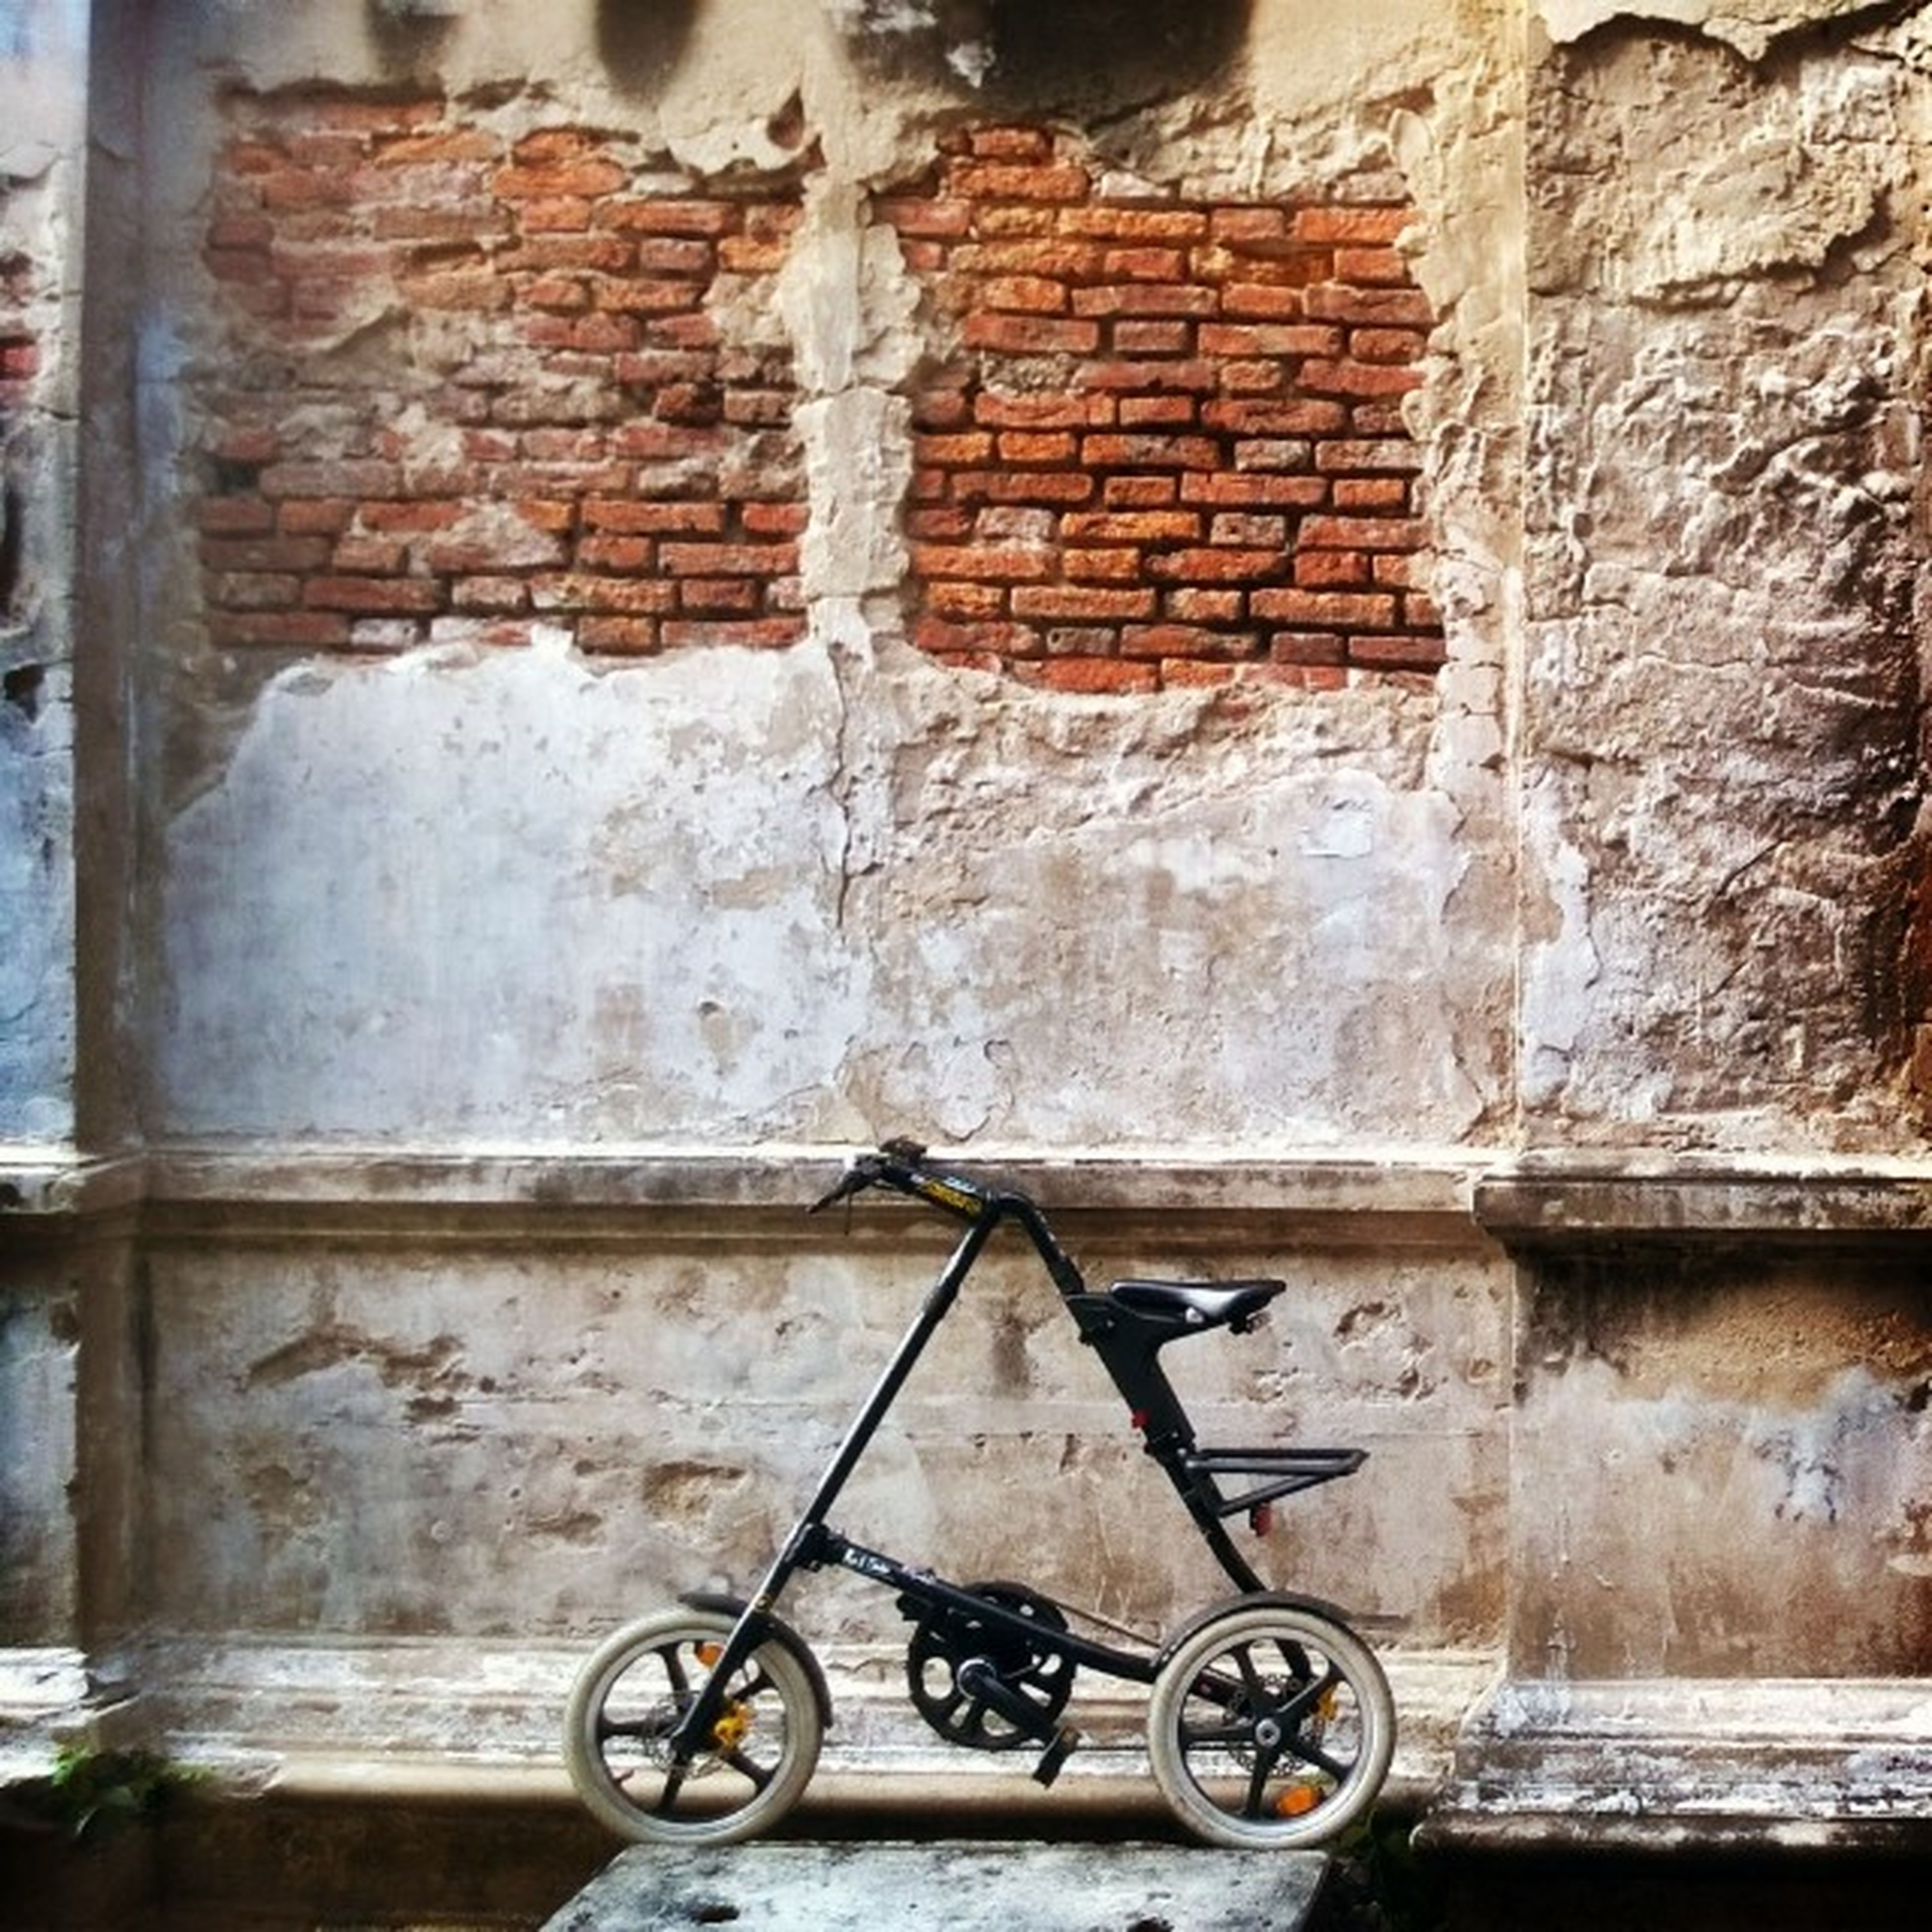 bicycle, transportation, mode of transport, land vehicle, stationary, parked, architecture, built structure, wall - building feature, building exterior, parking, brick wall, old, wall, abandoned, day, outdoors, no people, window, house